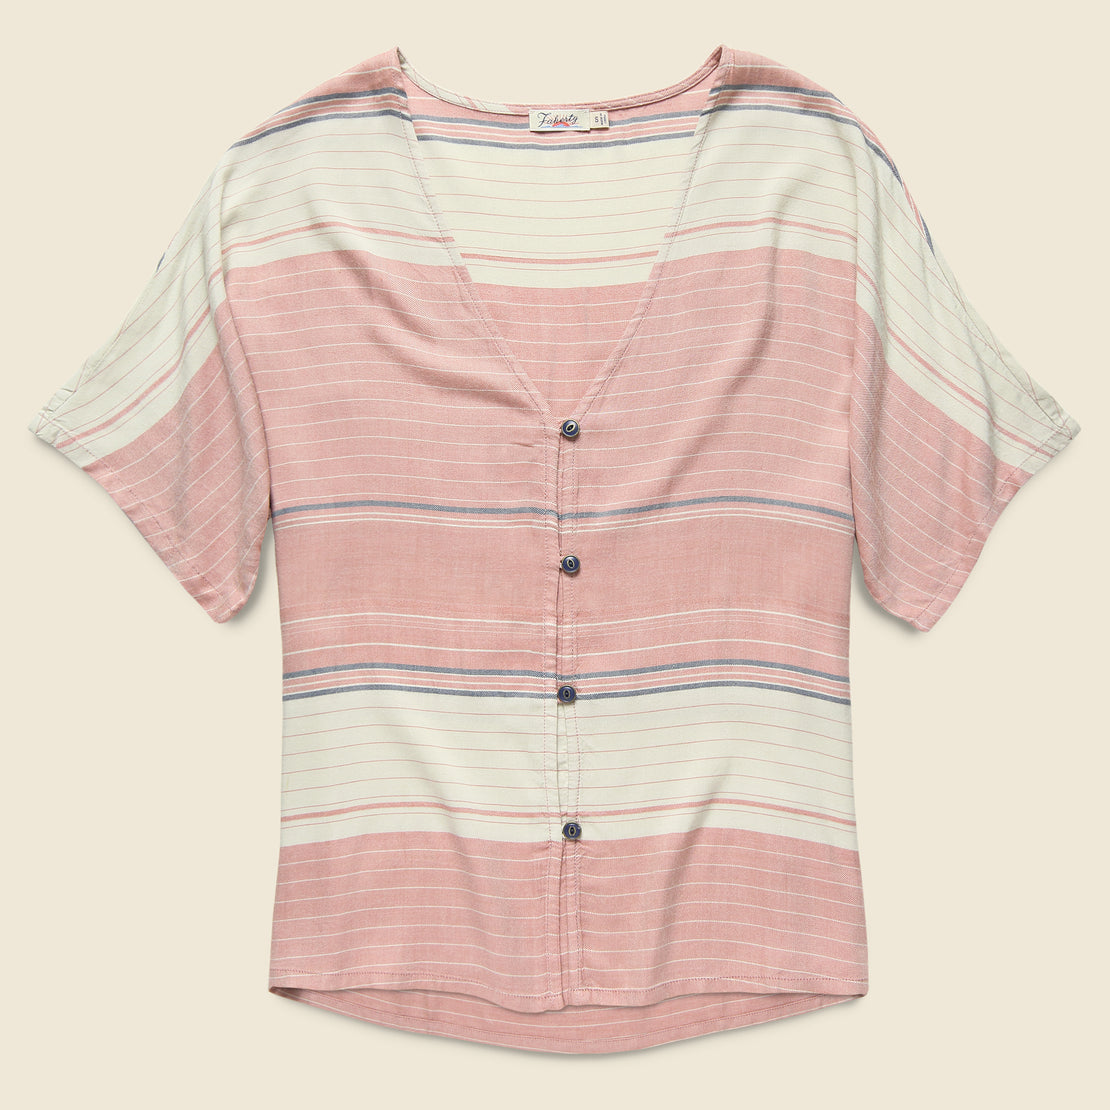 Faherty Analeigh Top - Rosewood Stripe